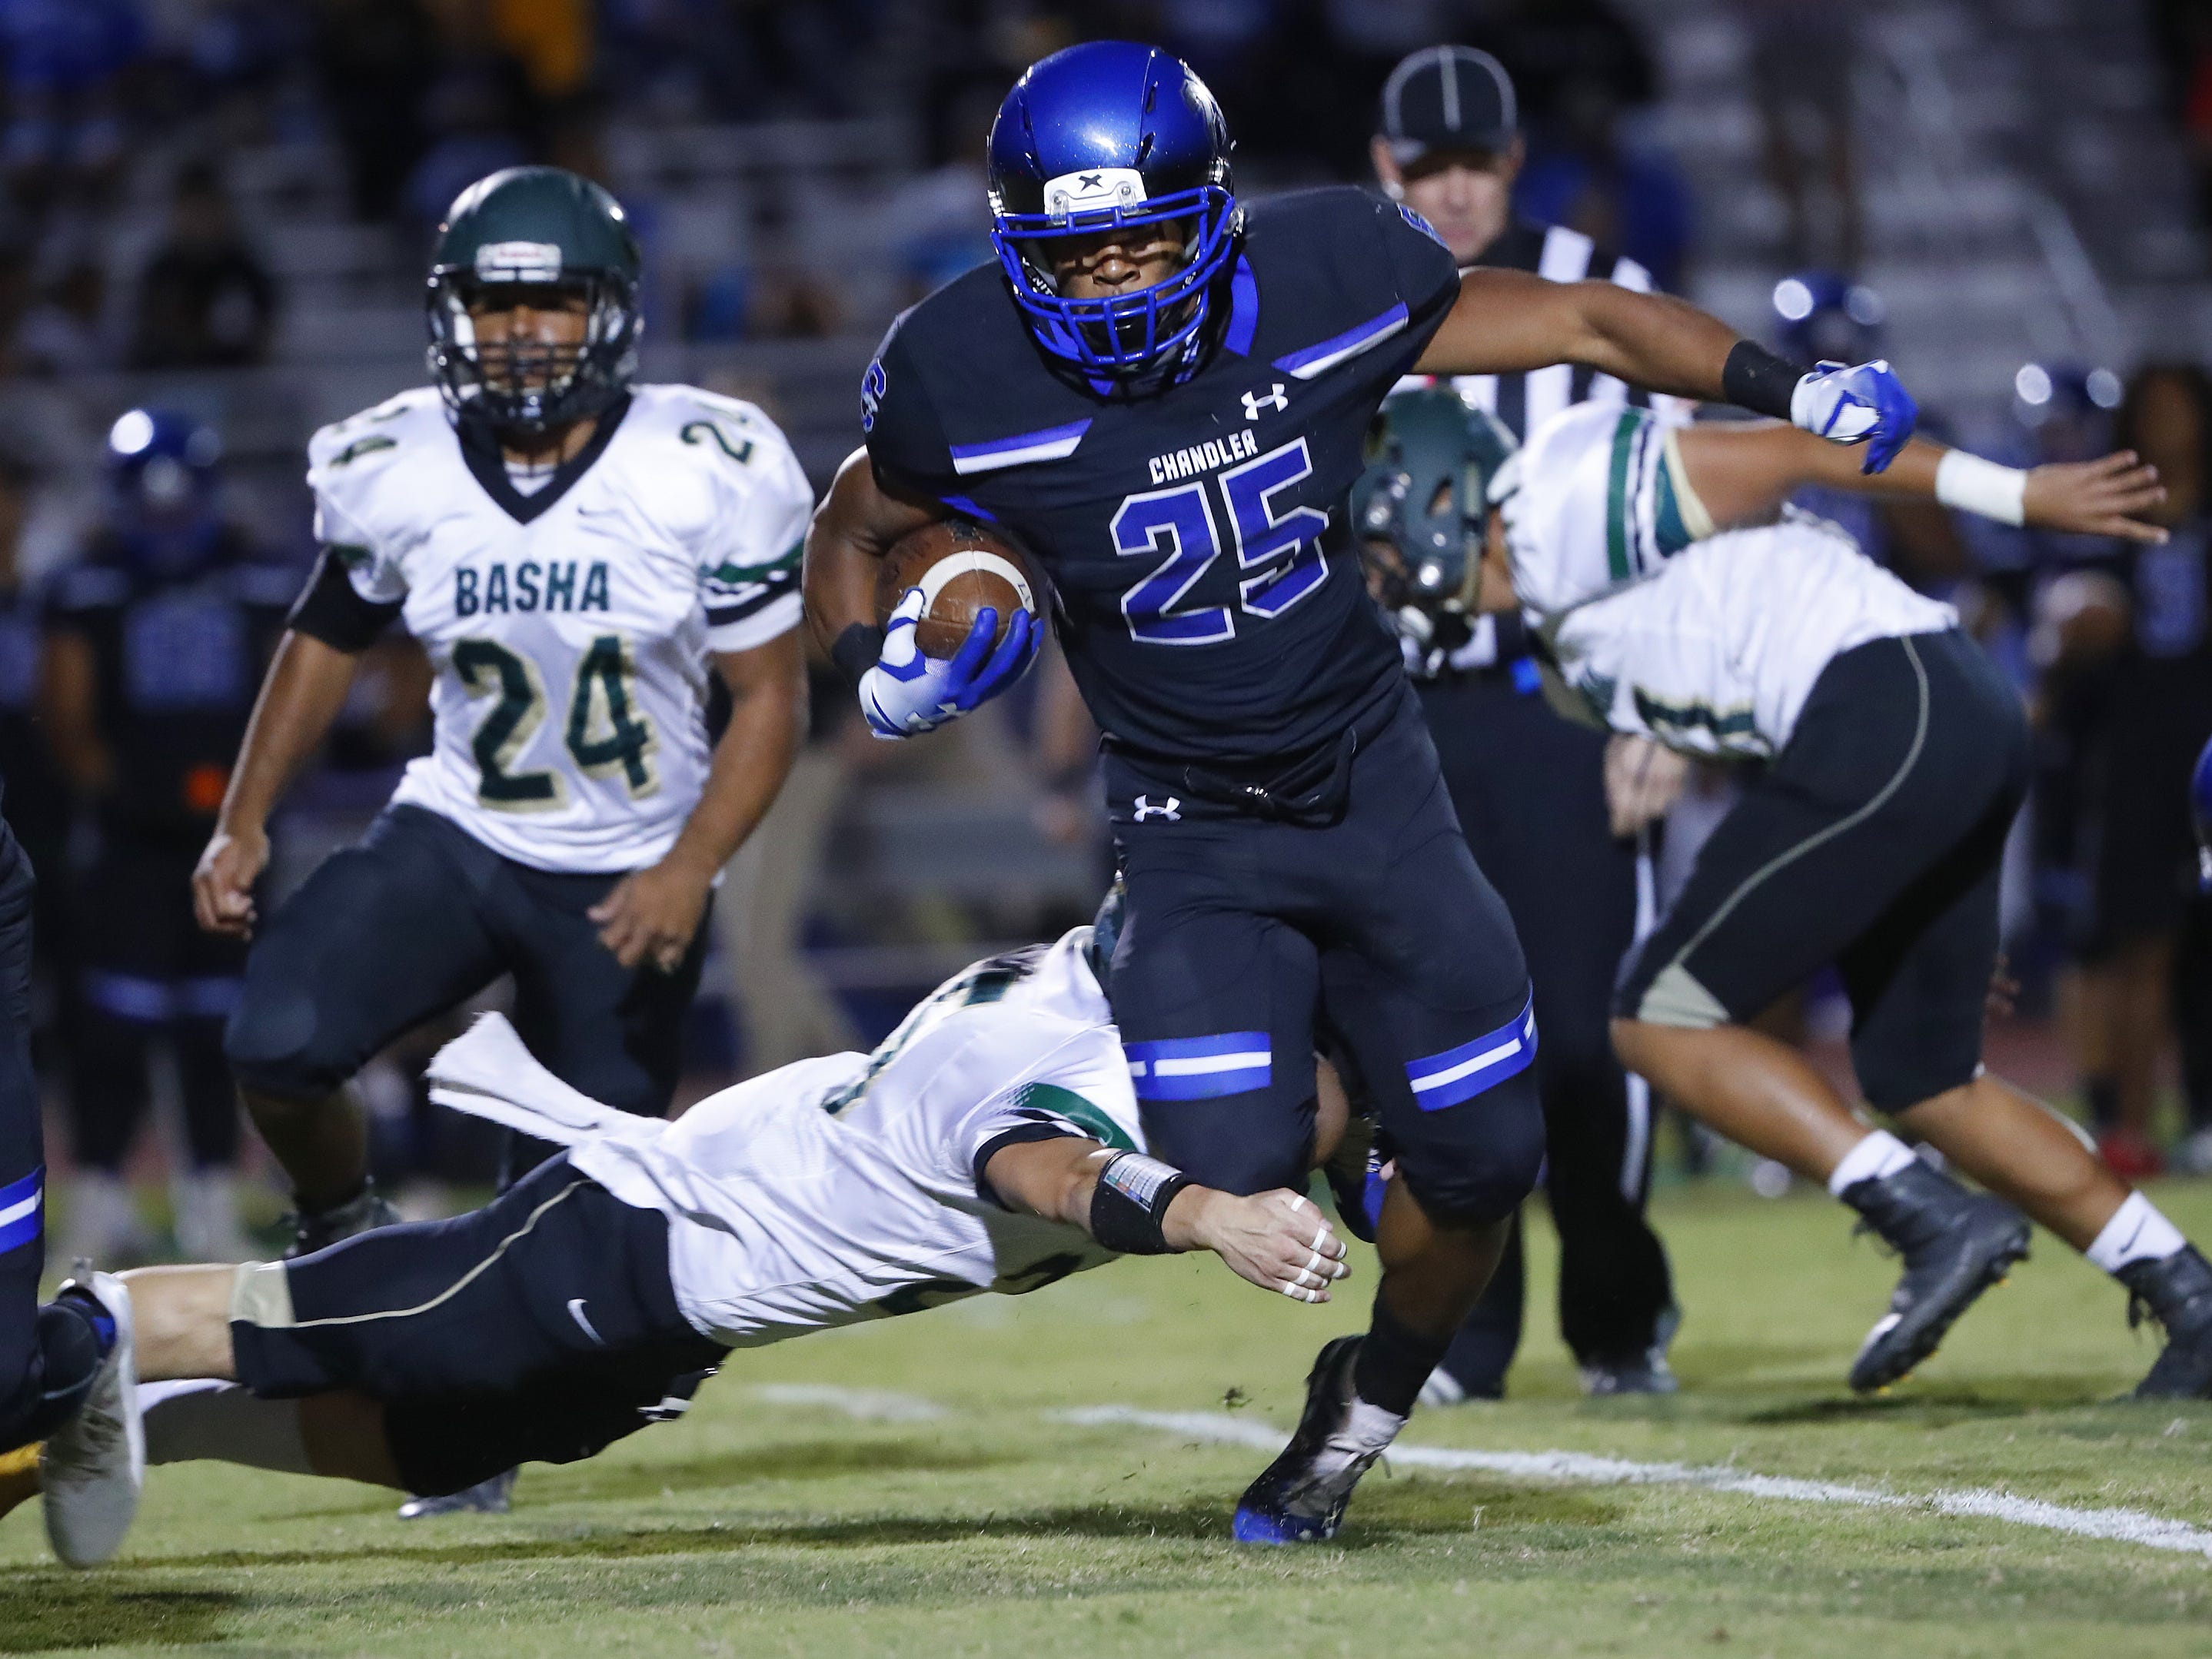 Chandler's DeCarlos Brooks (25) breaks a tackle from Basha's Dylan Quinn (25) at Chandler High School in Chandler, Ariz. on October 12, 2018. #azhsfb